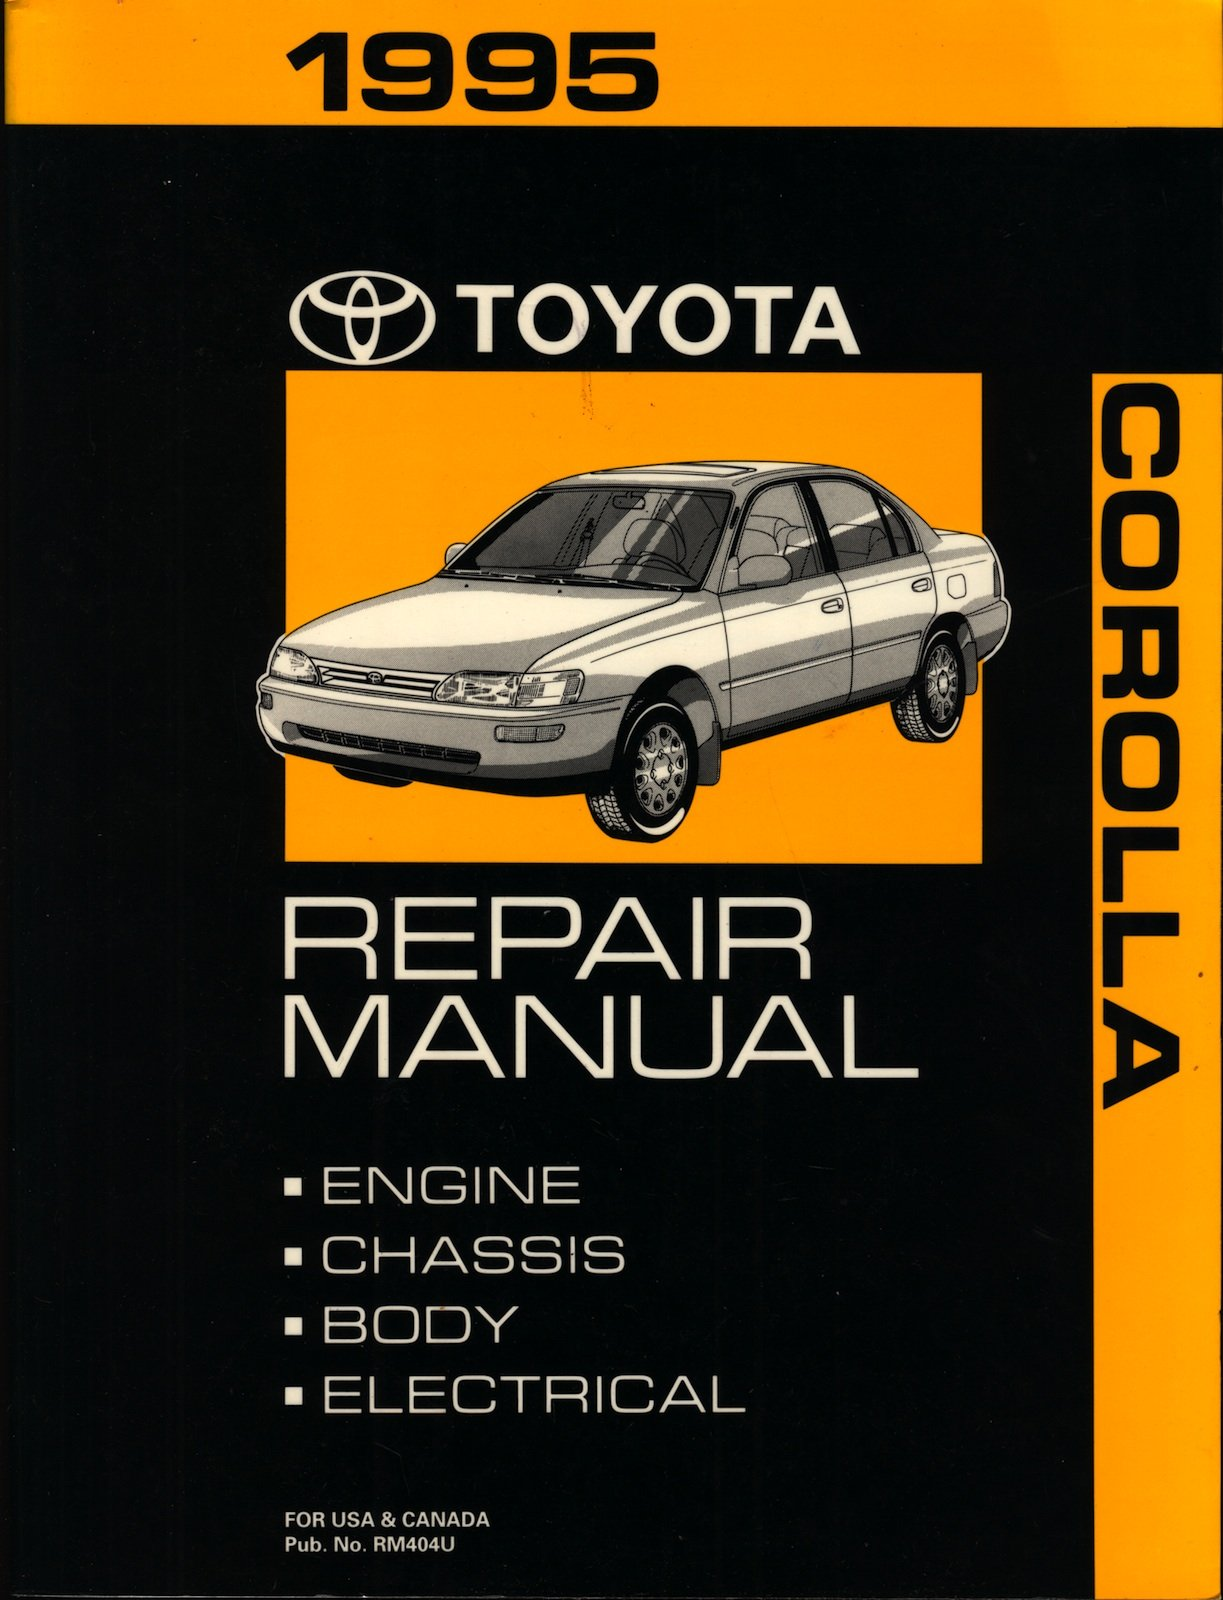 Toyota Corolla Repair Manual: Seat belt